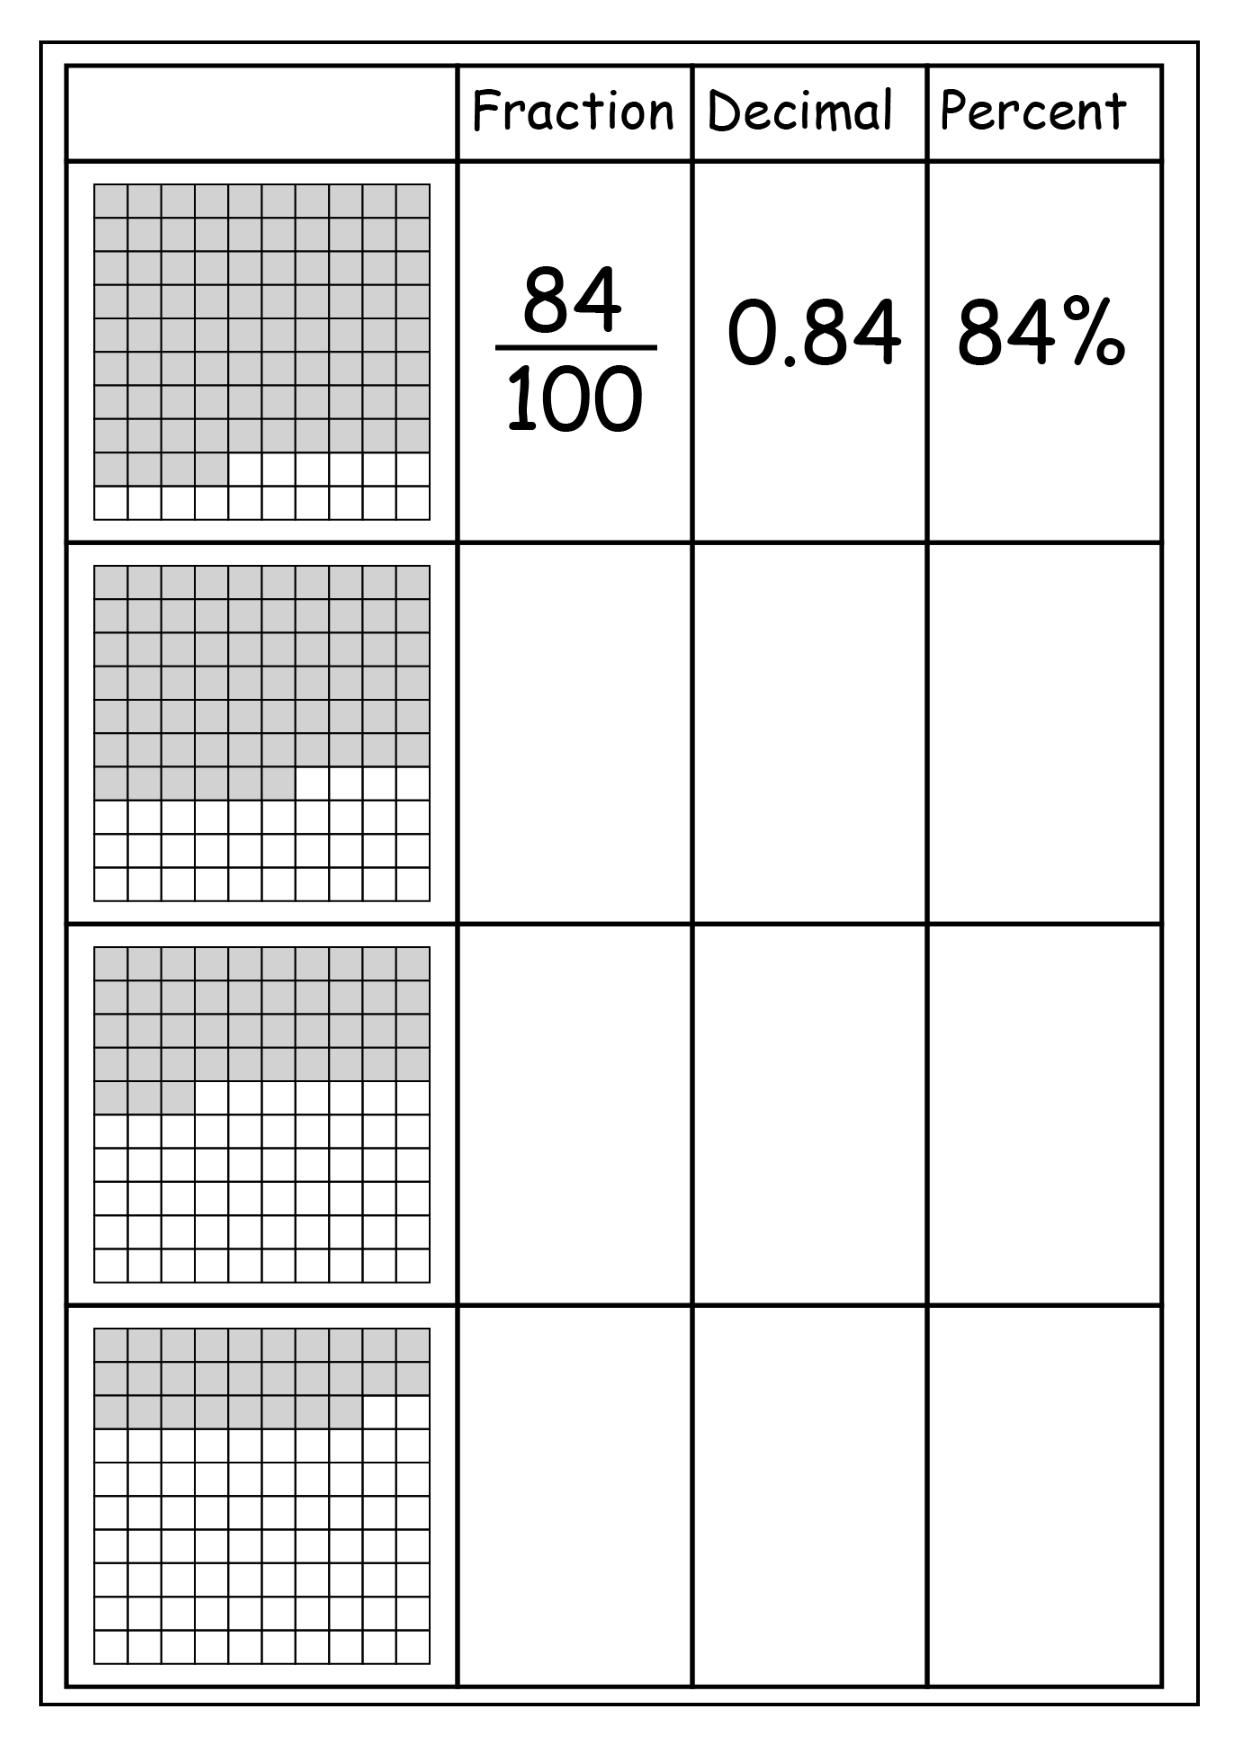 hight resolution of Mixed Fractions Reducing Fractions Worksheet 6th Grade   Printable  Worksheets and Activities for Teachers